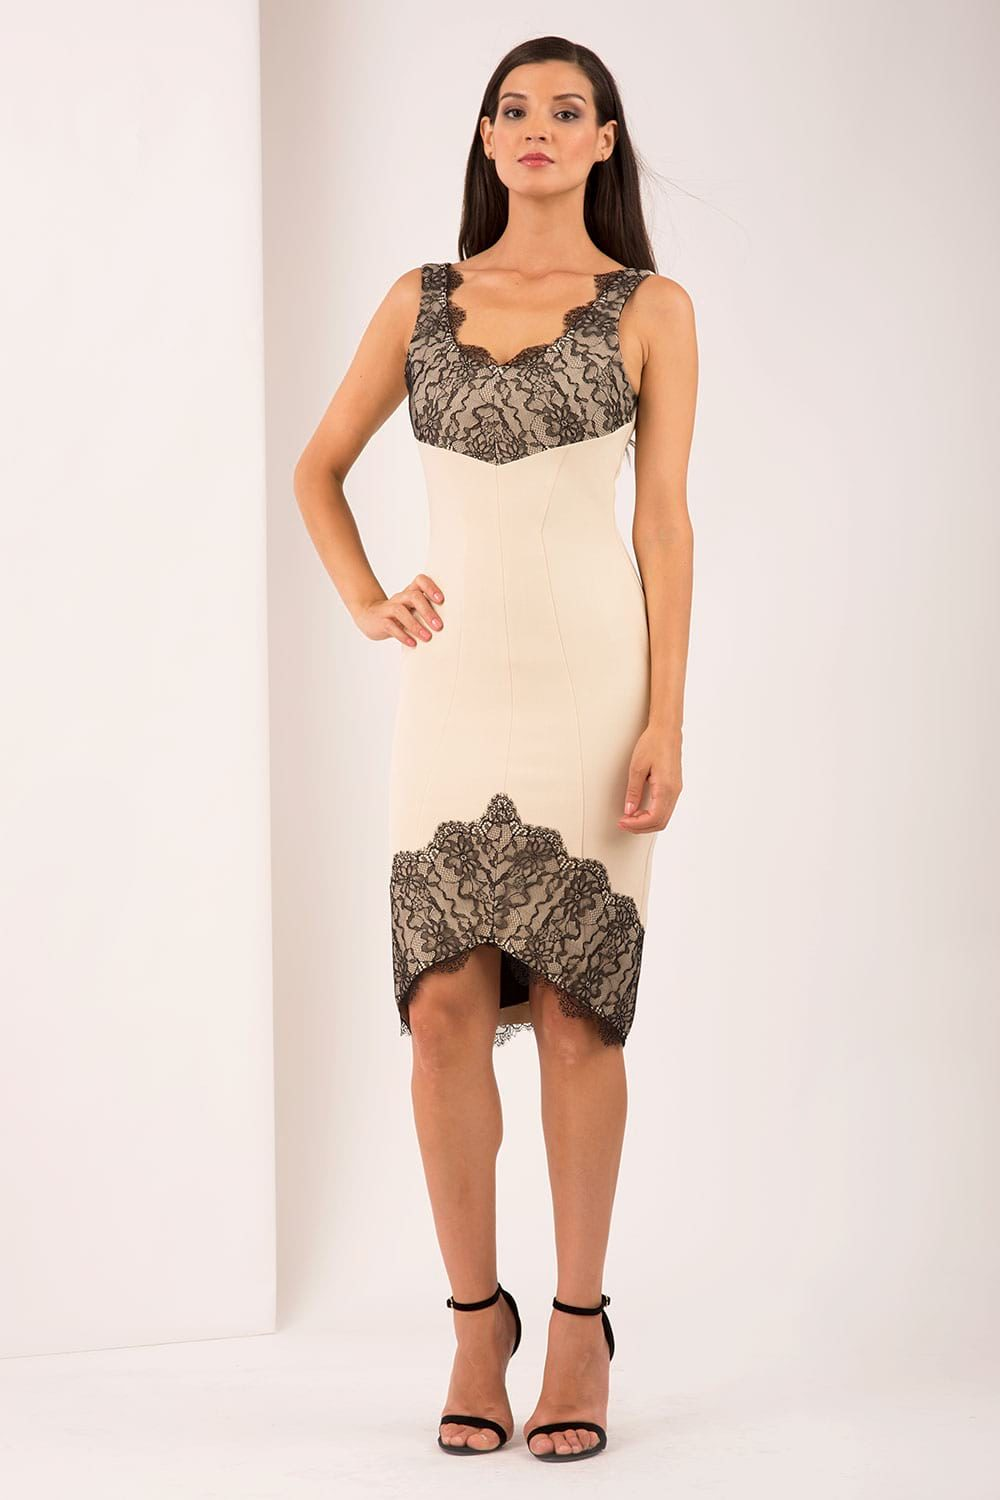 Hybrid Fashion 1208 Willow Lace Pencil Dress